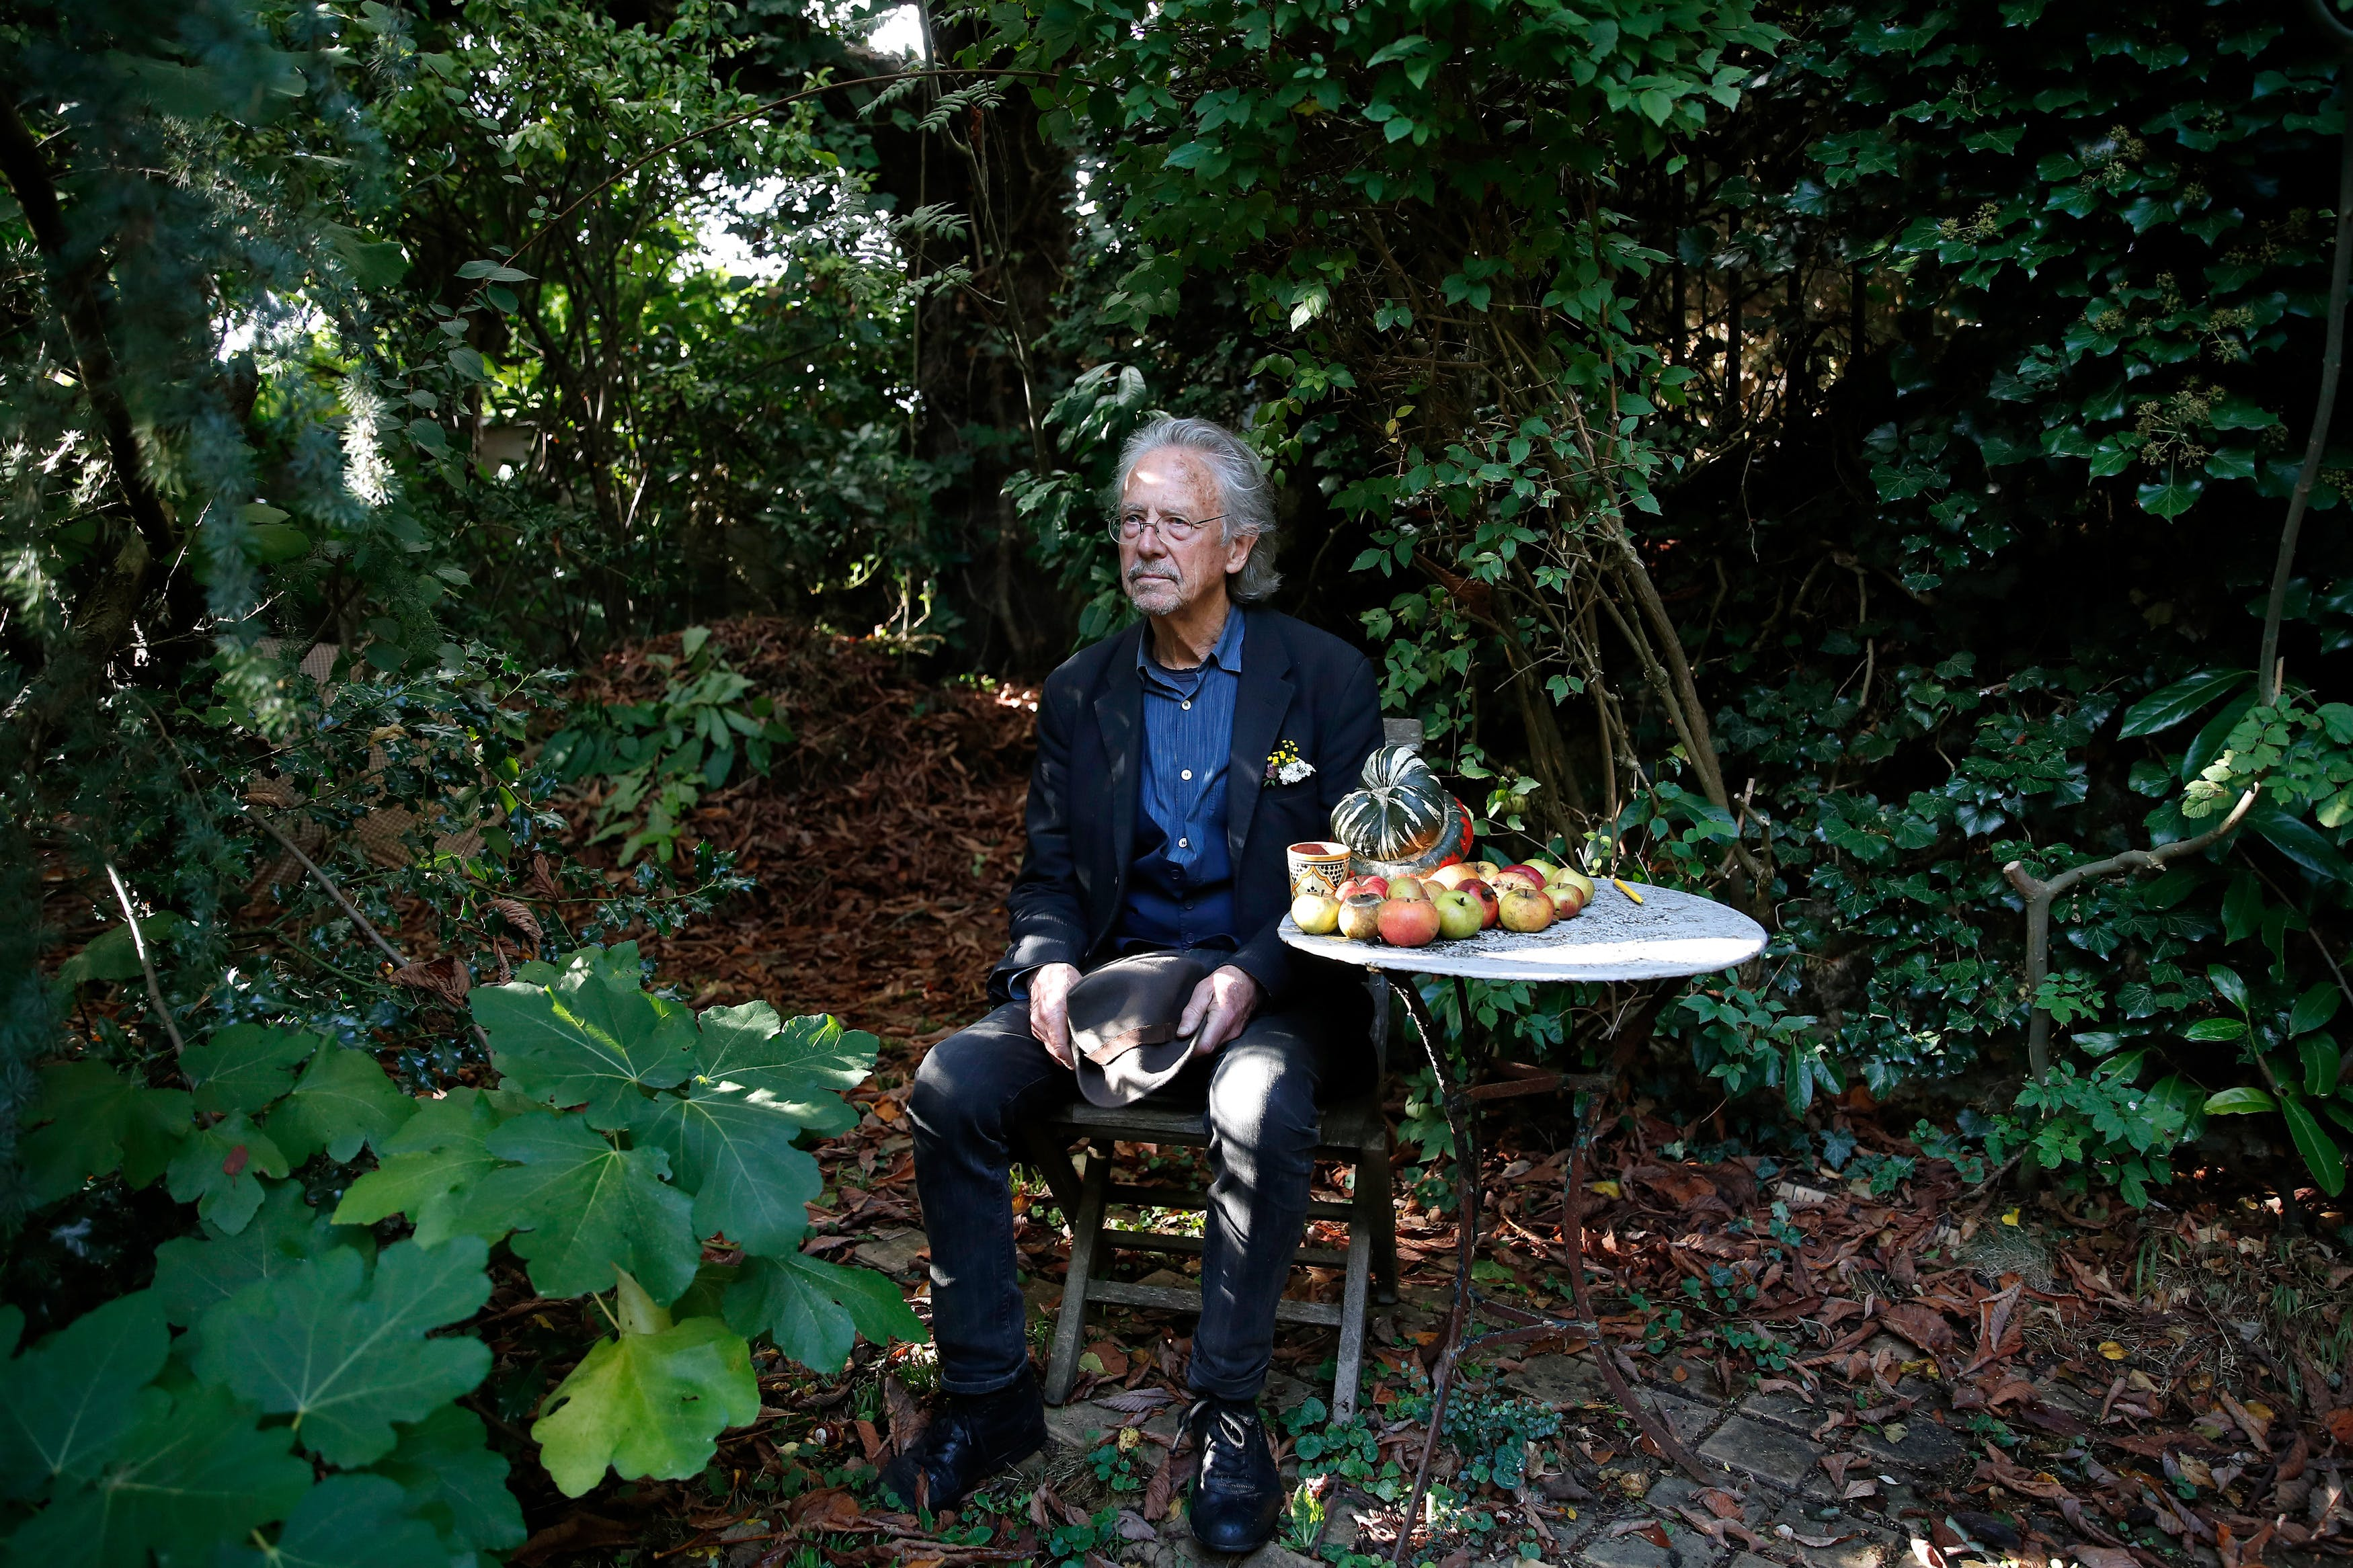 Austrian author Peter Handke sits in this garden at his house in Chaville near Paris, Thursday, Oct. 10, 2019. Handke was awarded the 2019 Nobel Prize in literature earlier Thursday. (AP Photo/Francois More)